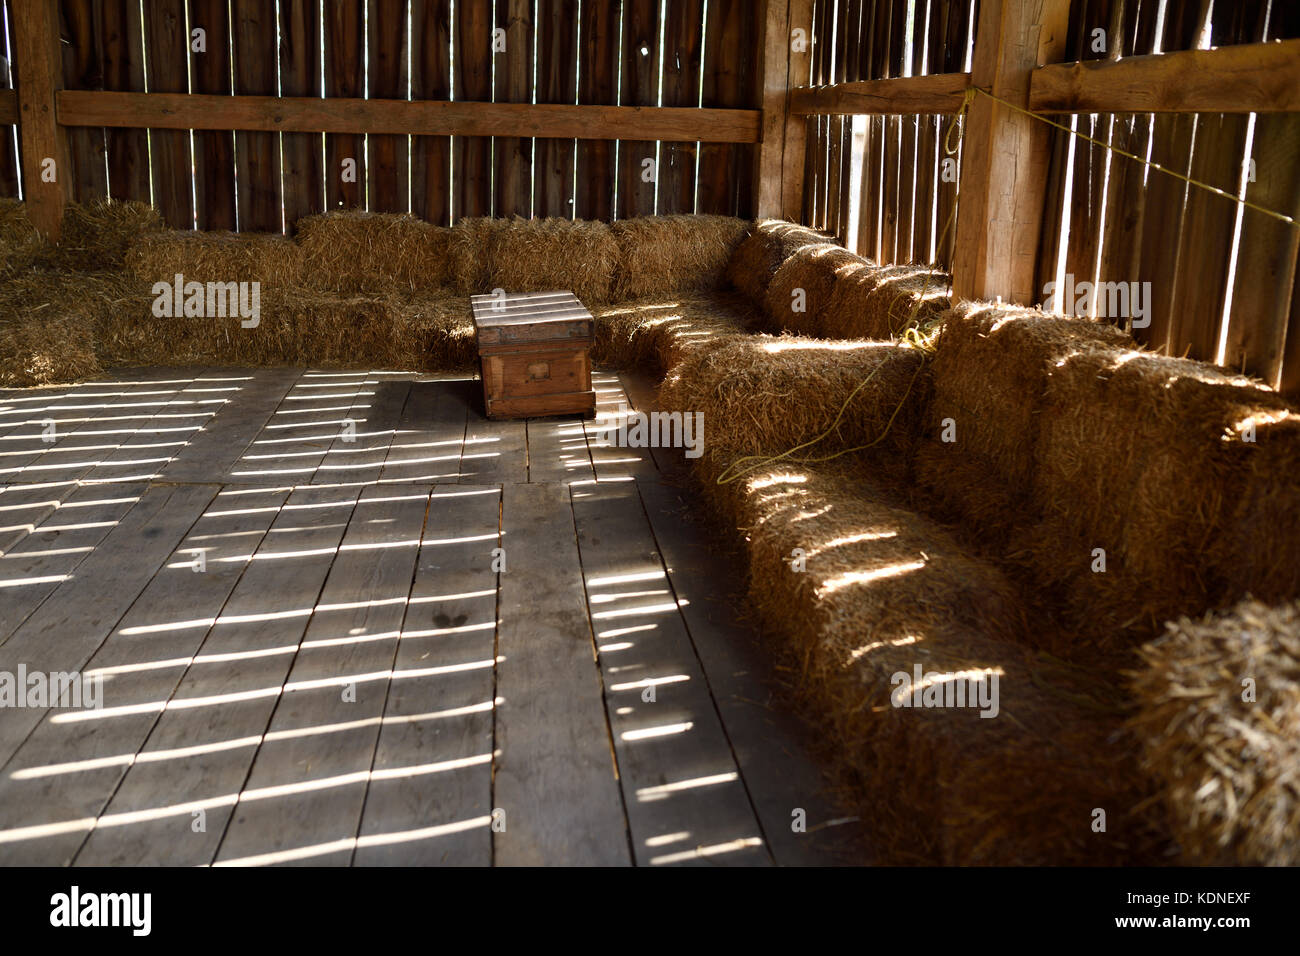 Barn with hay bale couches for shows and entertainment at By Chadsey's Cairn winery and vineyard Prince Edward - Stock Image